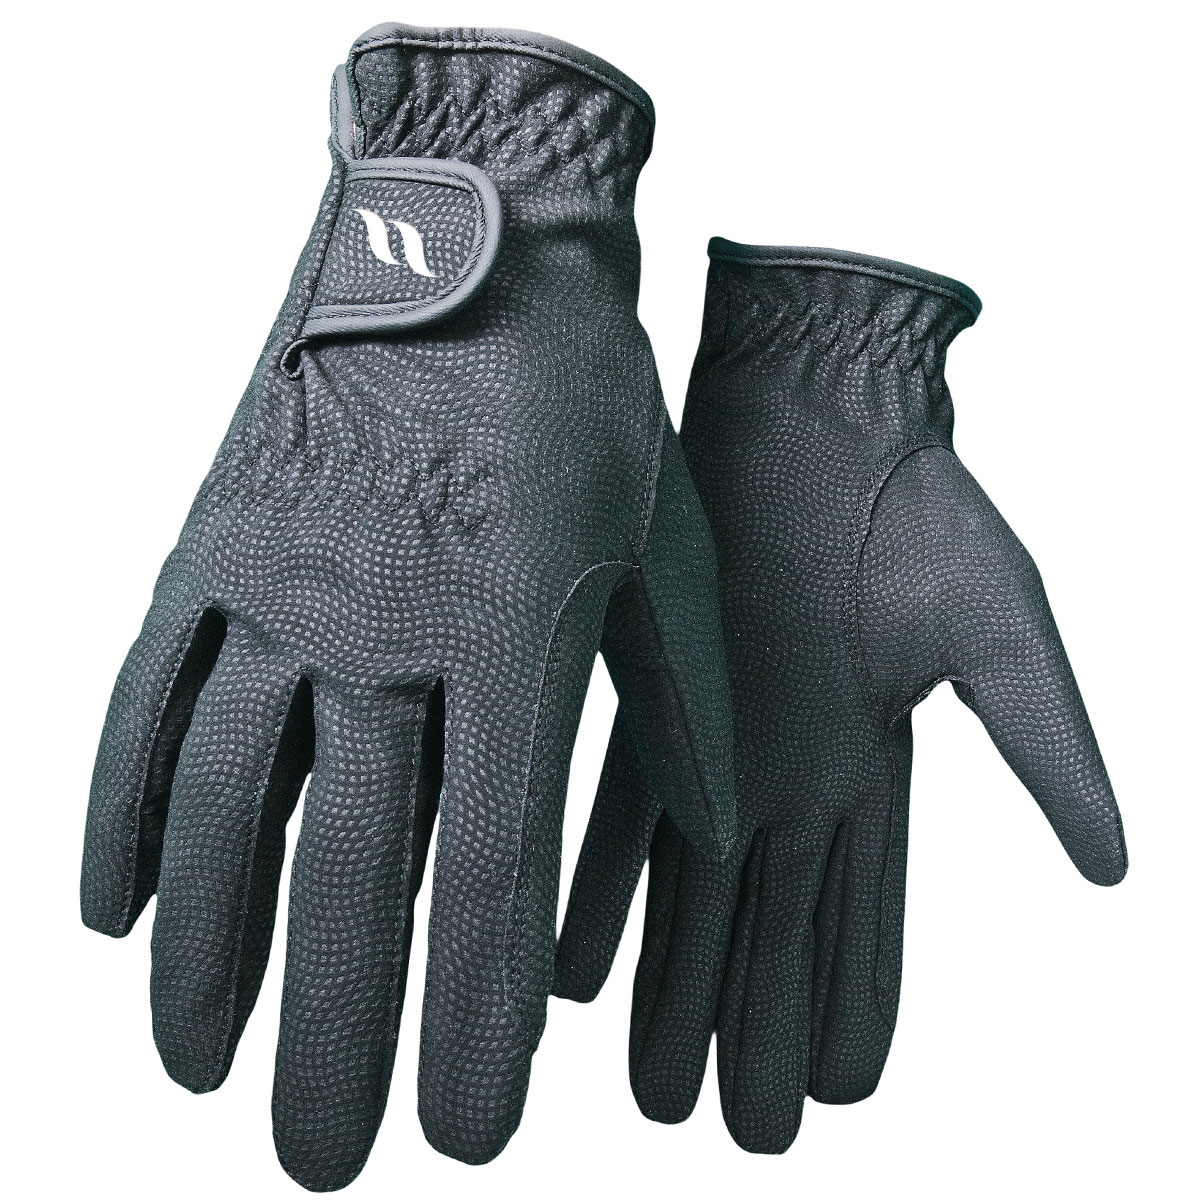 Back on Track Therapeutic Riding Gloves